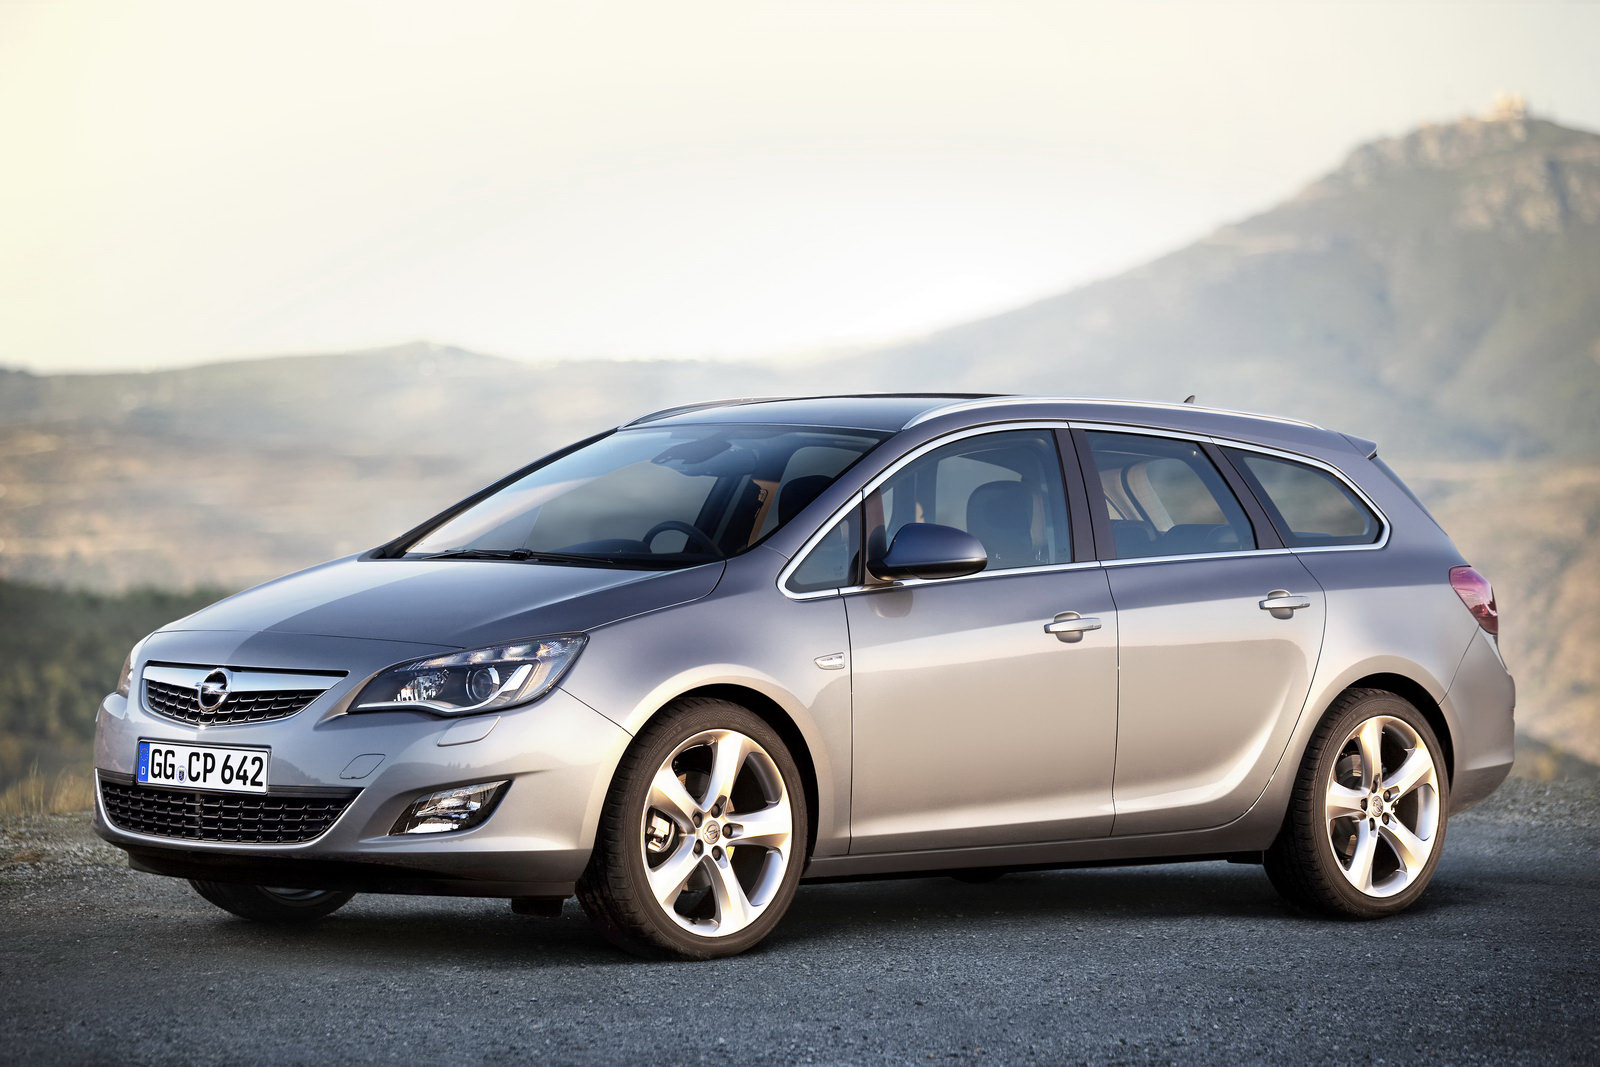 Astra sports tourer - Opel Astra Sports Tourer Technical Details History Photos On